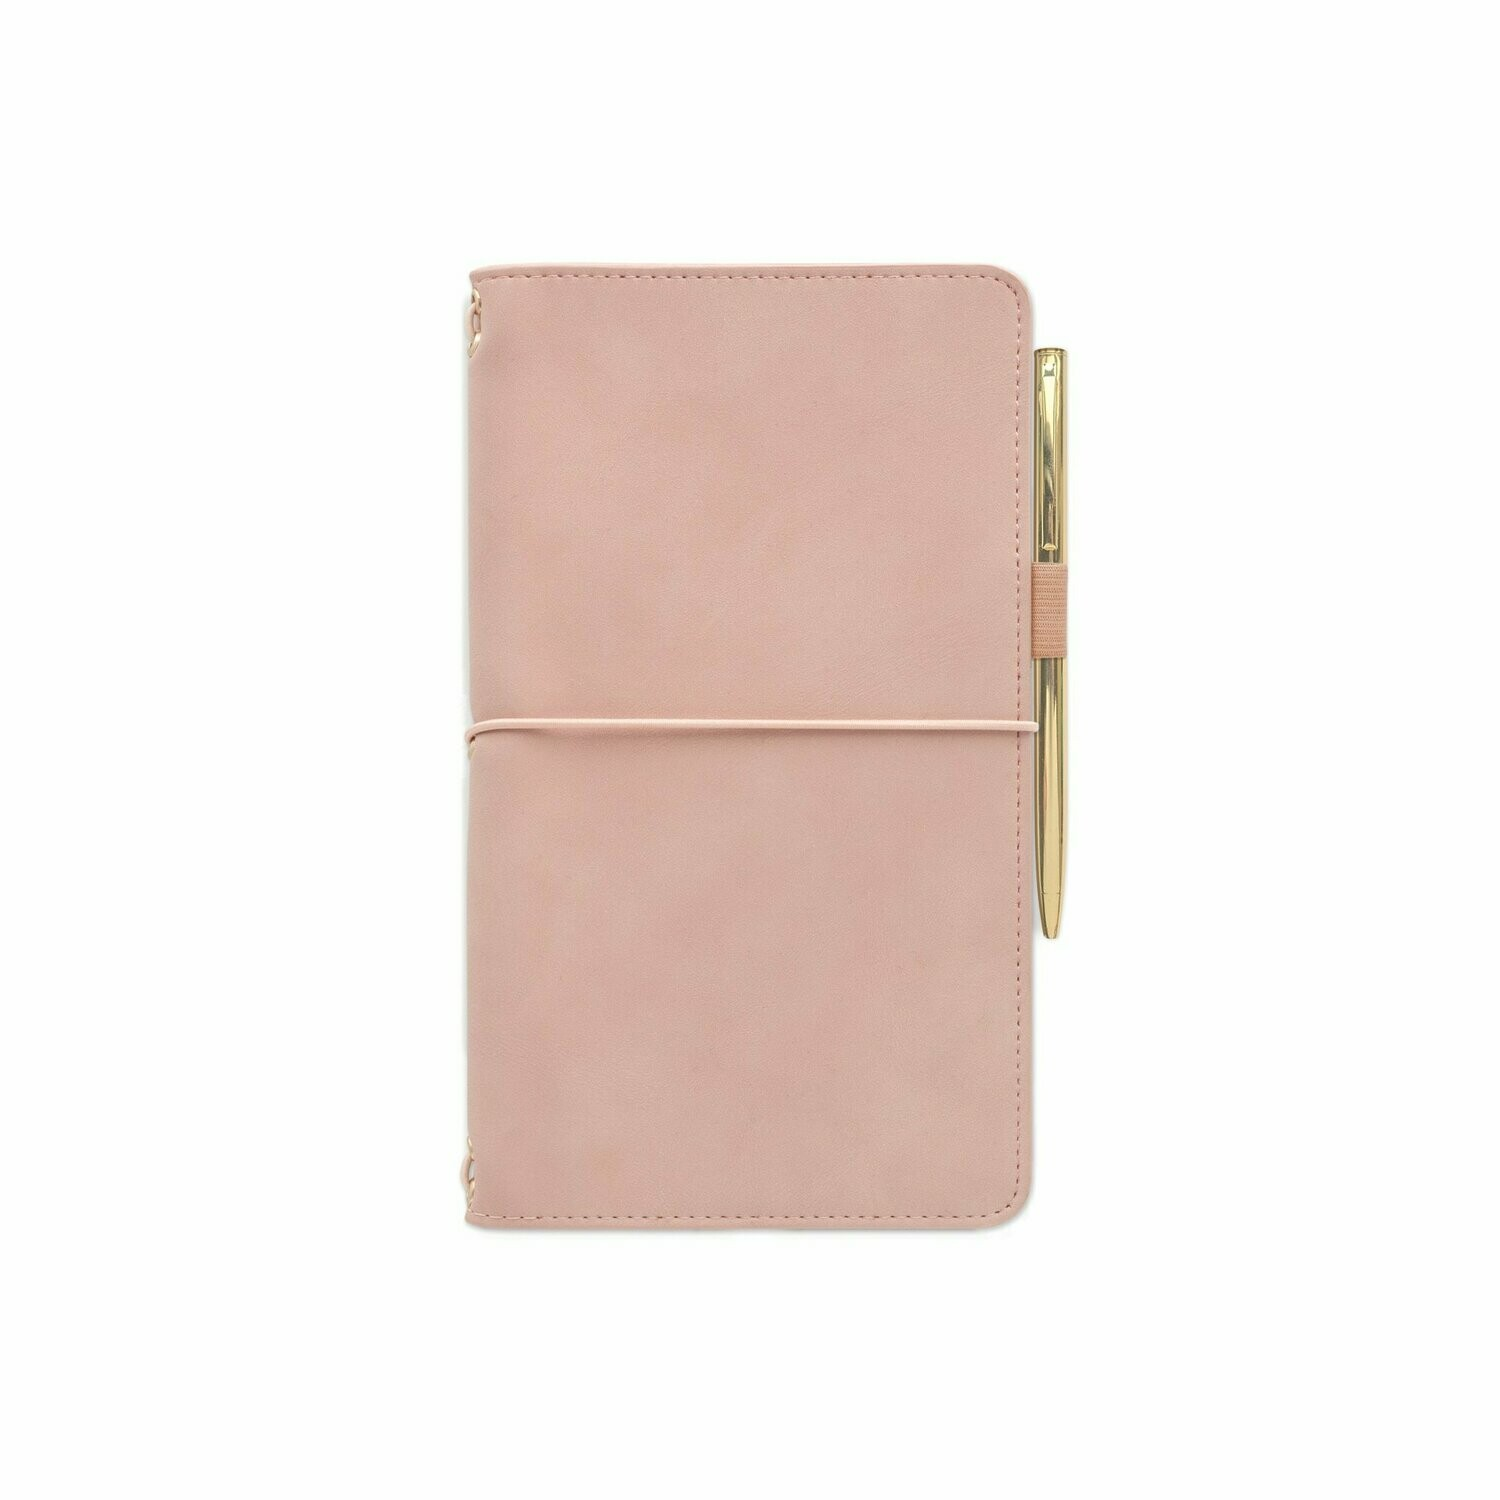 Traveler´s Notebook Blush- Vegan Leather